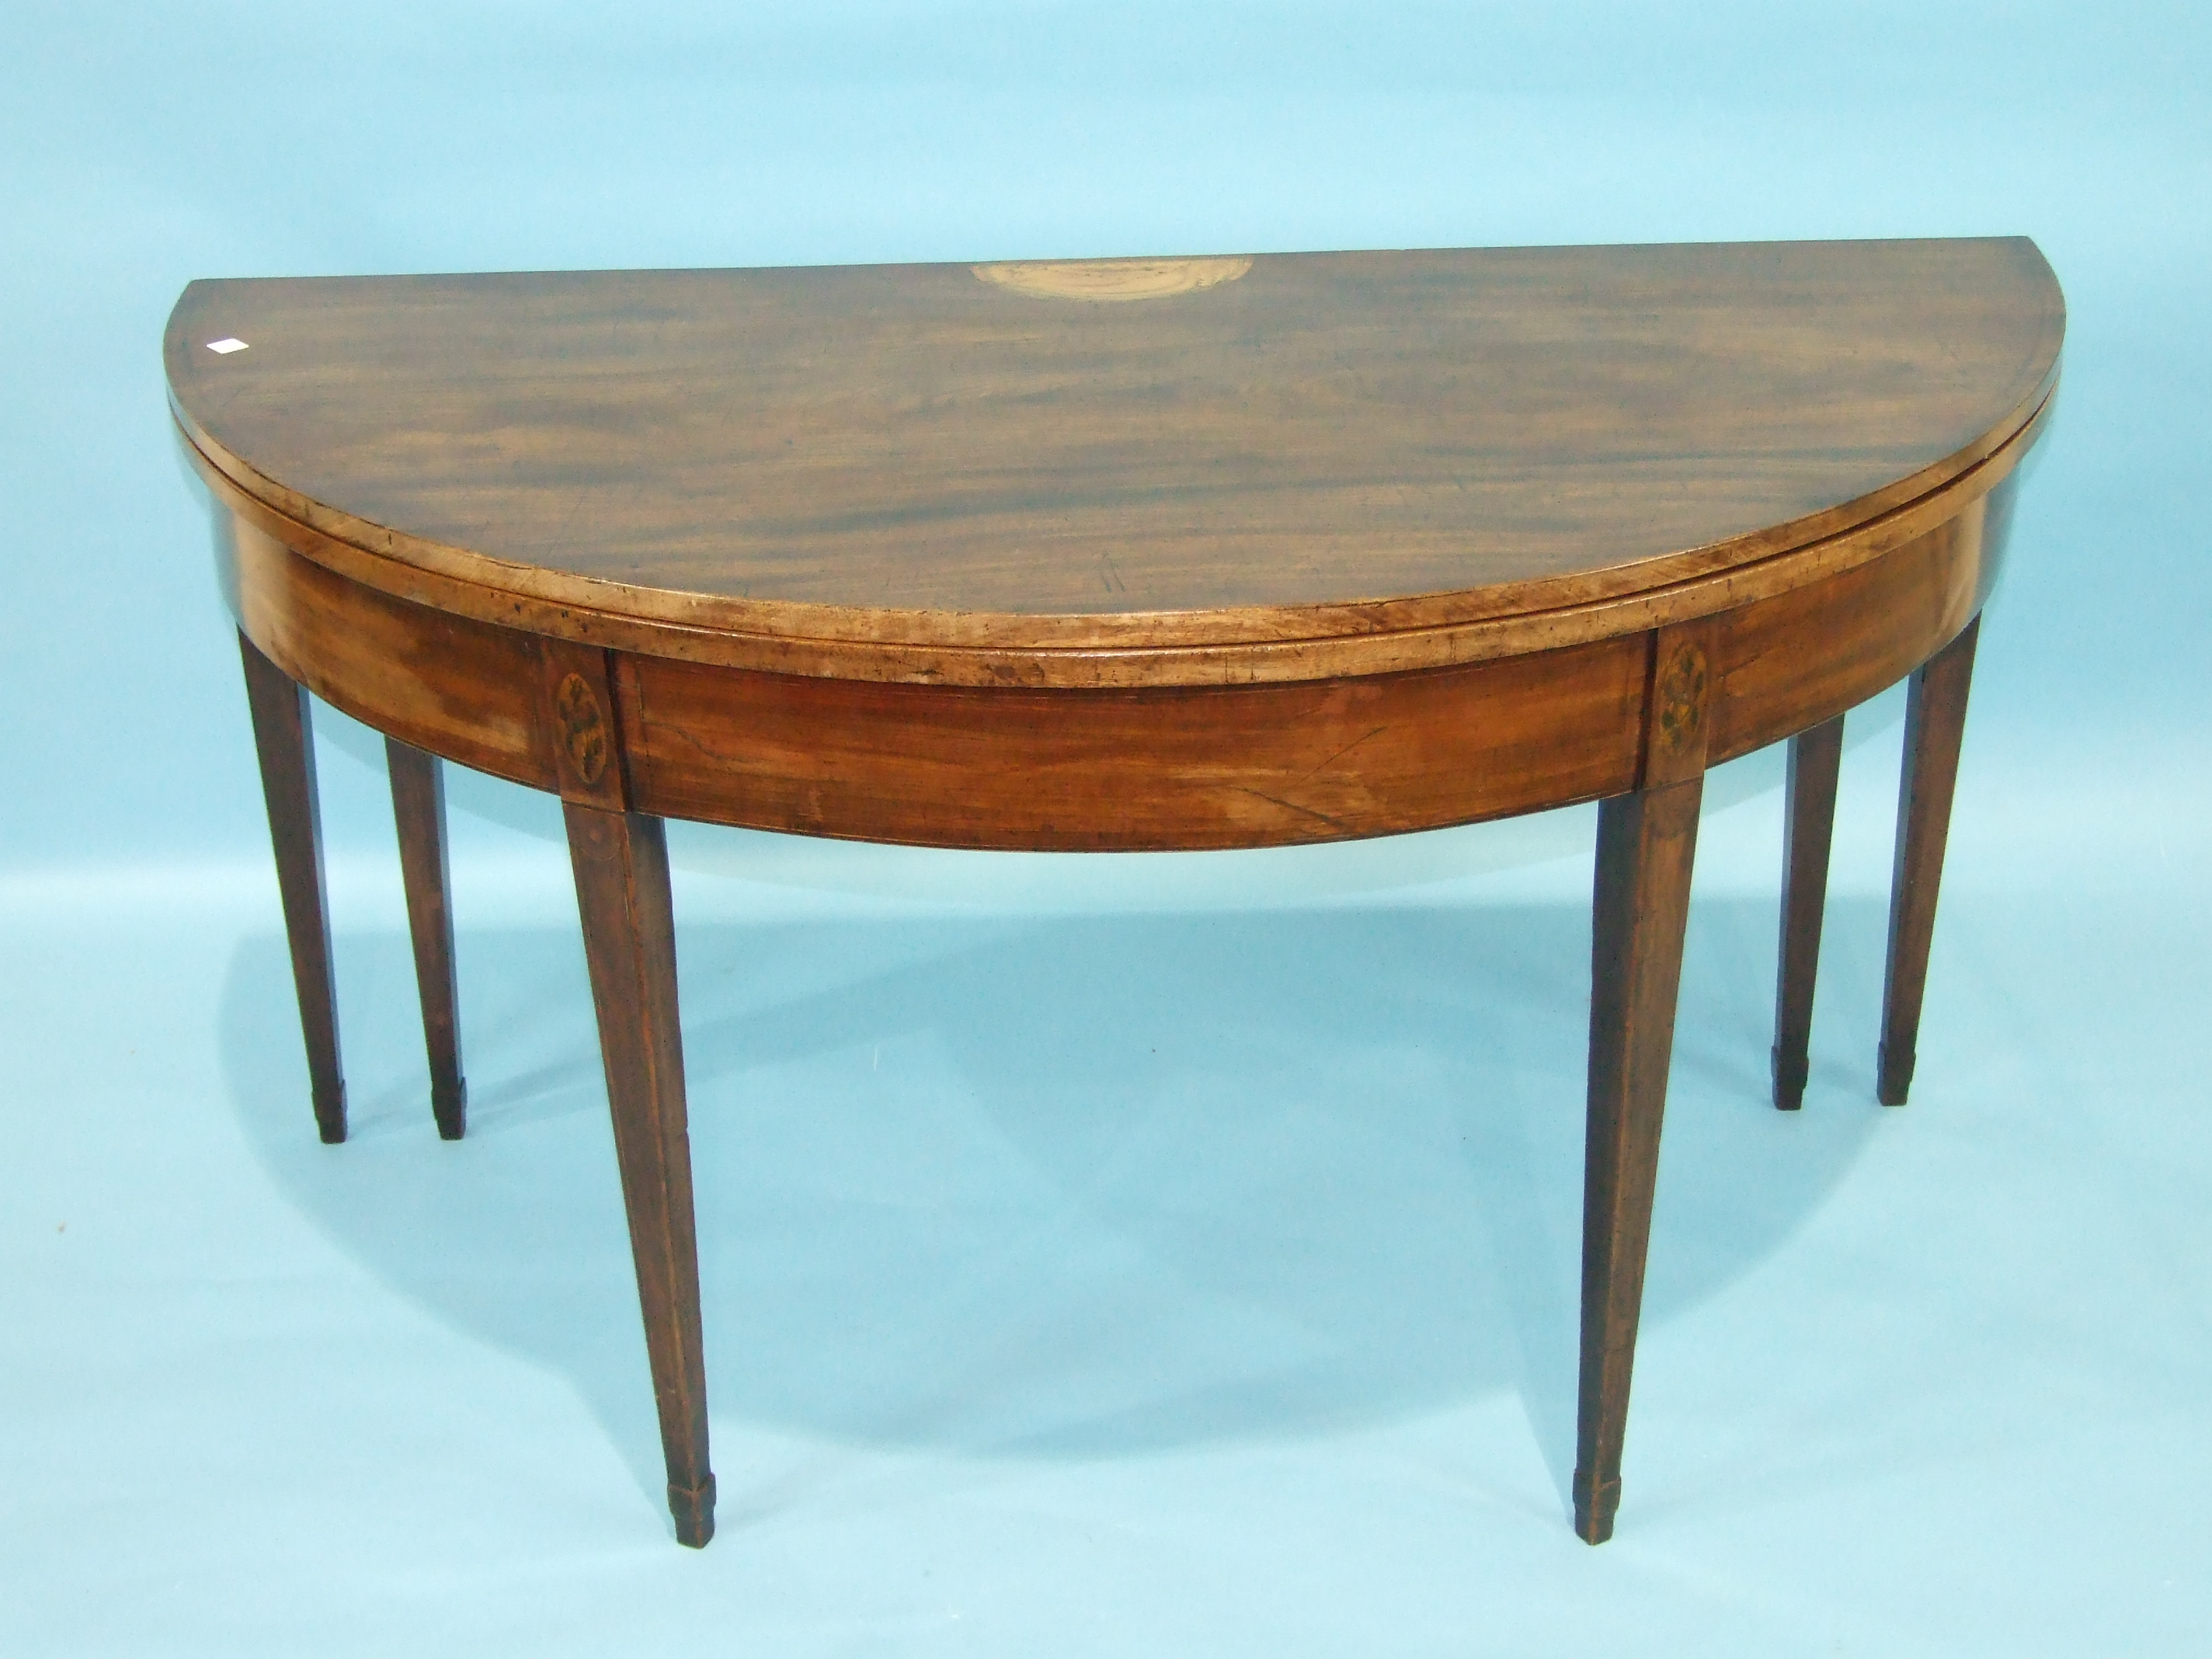 A Georgian mahogany gate-leg breakfast table, the circular fold-over top with inlaid shell motif, on - Image 2 of 2